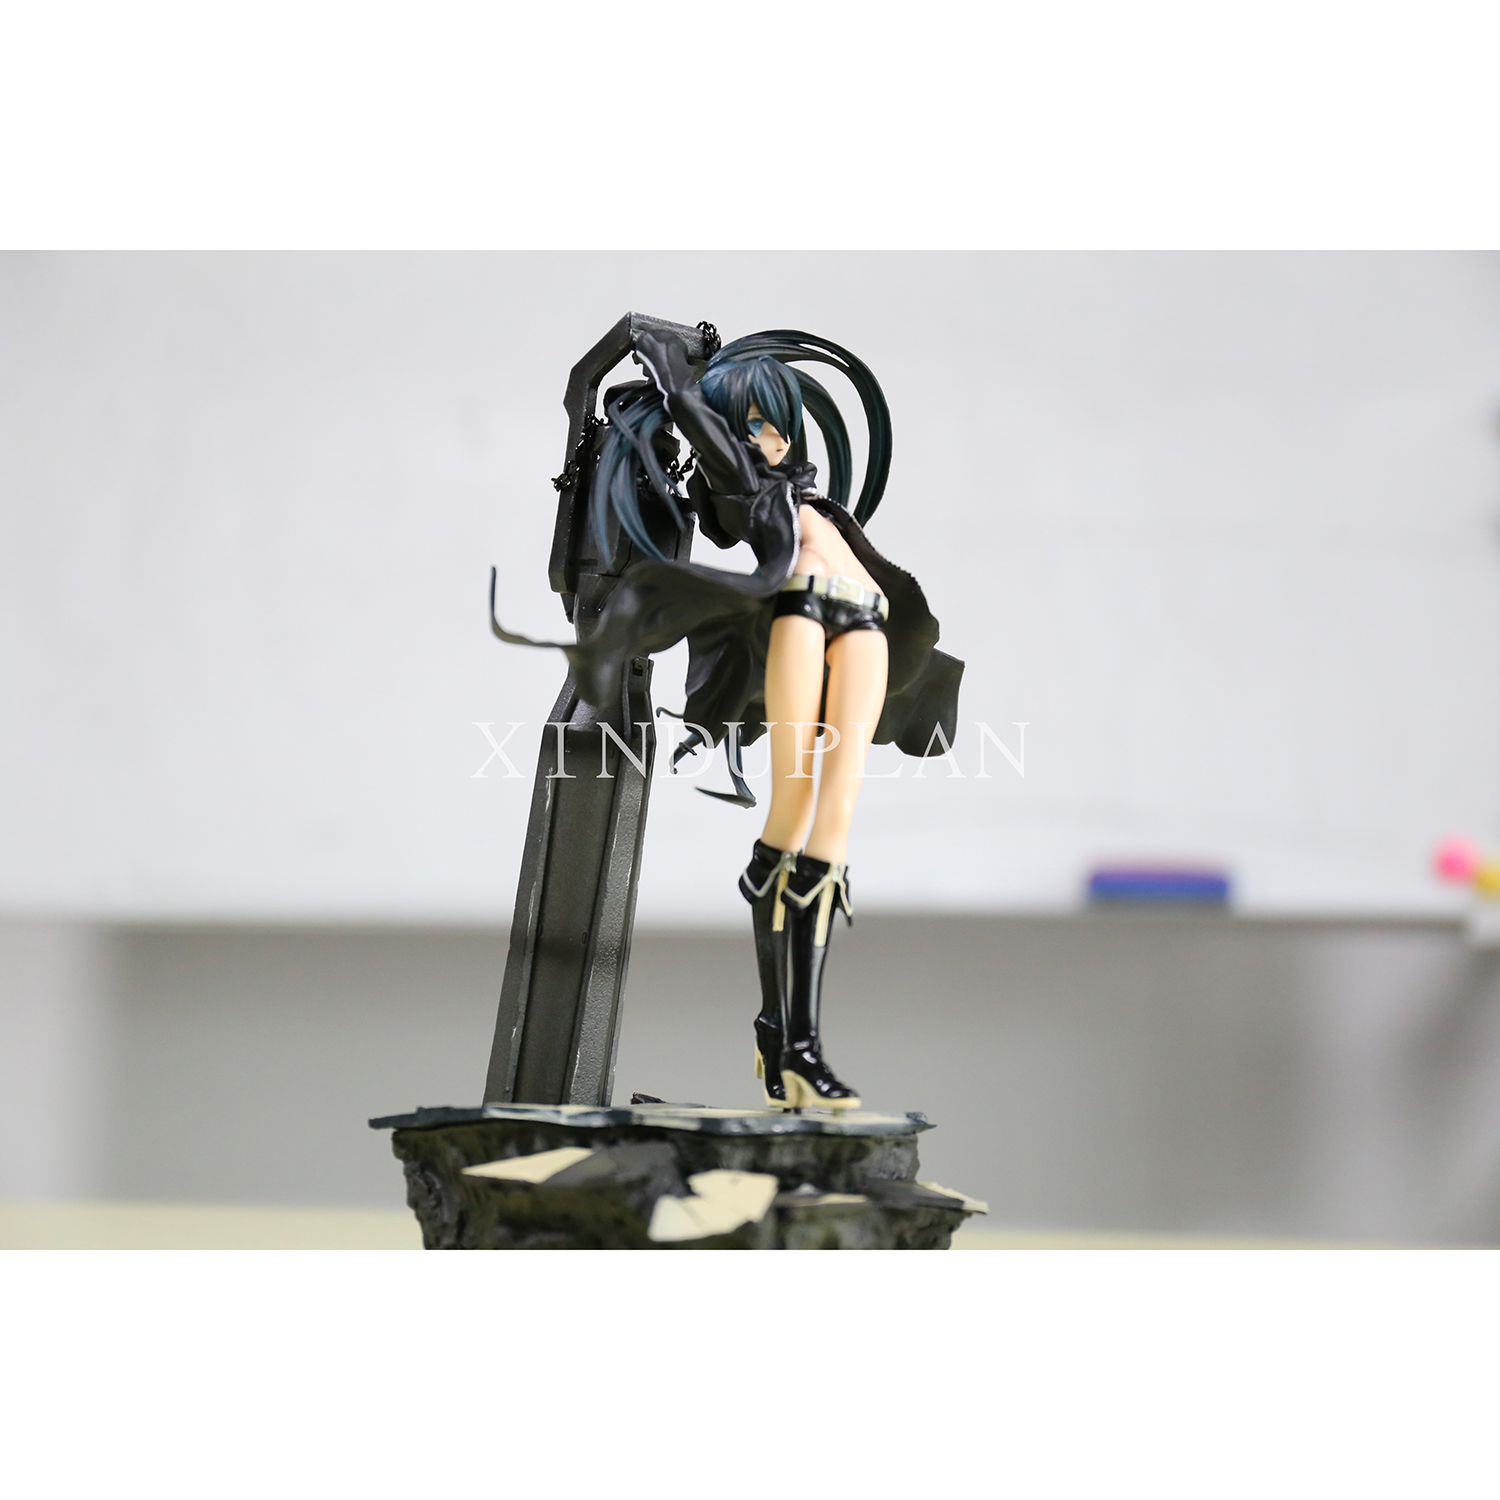 XINDUPLAN VOCALOID Anime Hatsune Miku Black Rock Shooter BRS PVC Action Figure Collectible Kids Toys 29cm s017 hot anime vocaloid hatsune miku action figures pvc brinquedos collection figures toys kids birthday christmas gift free shipping